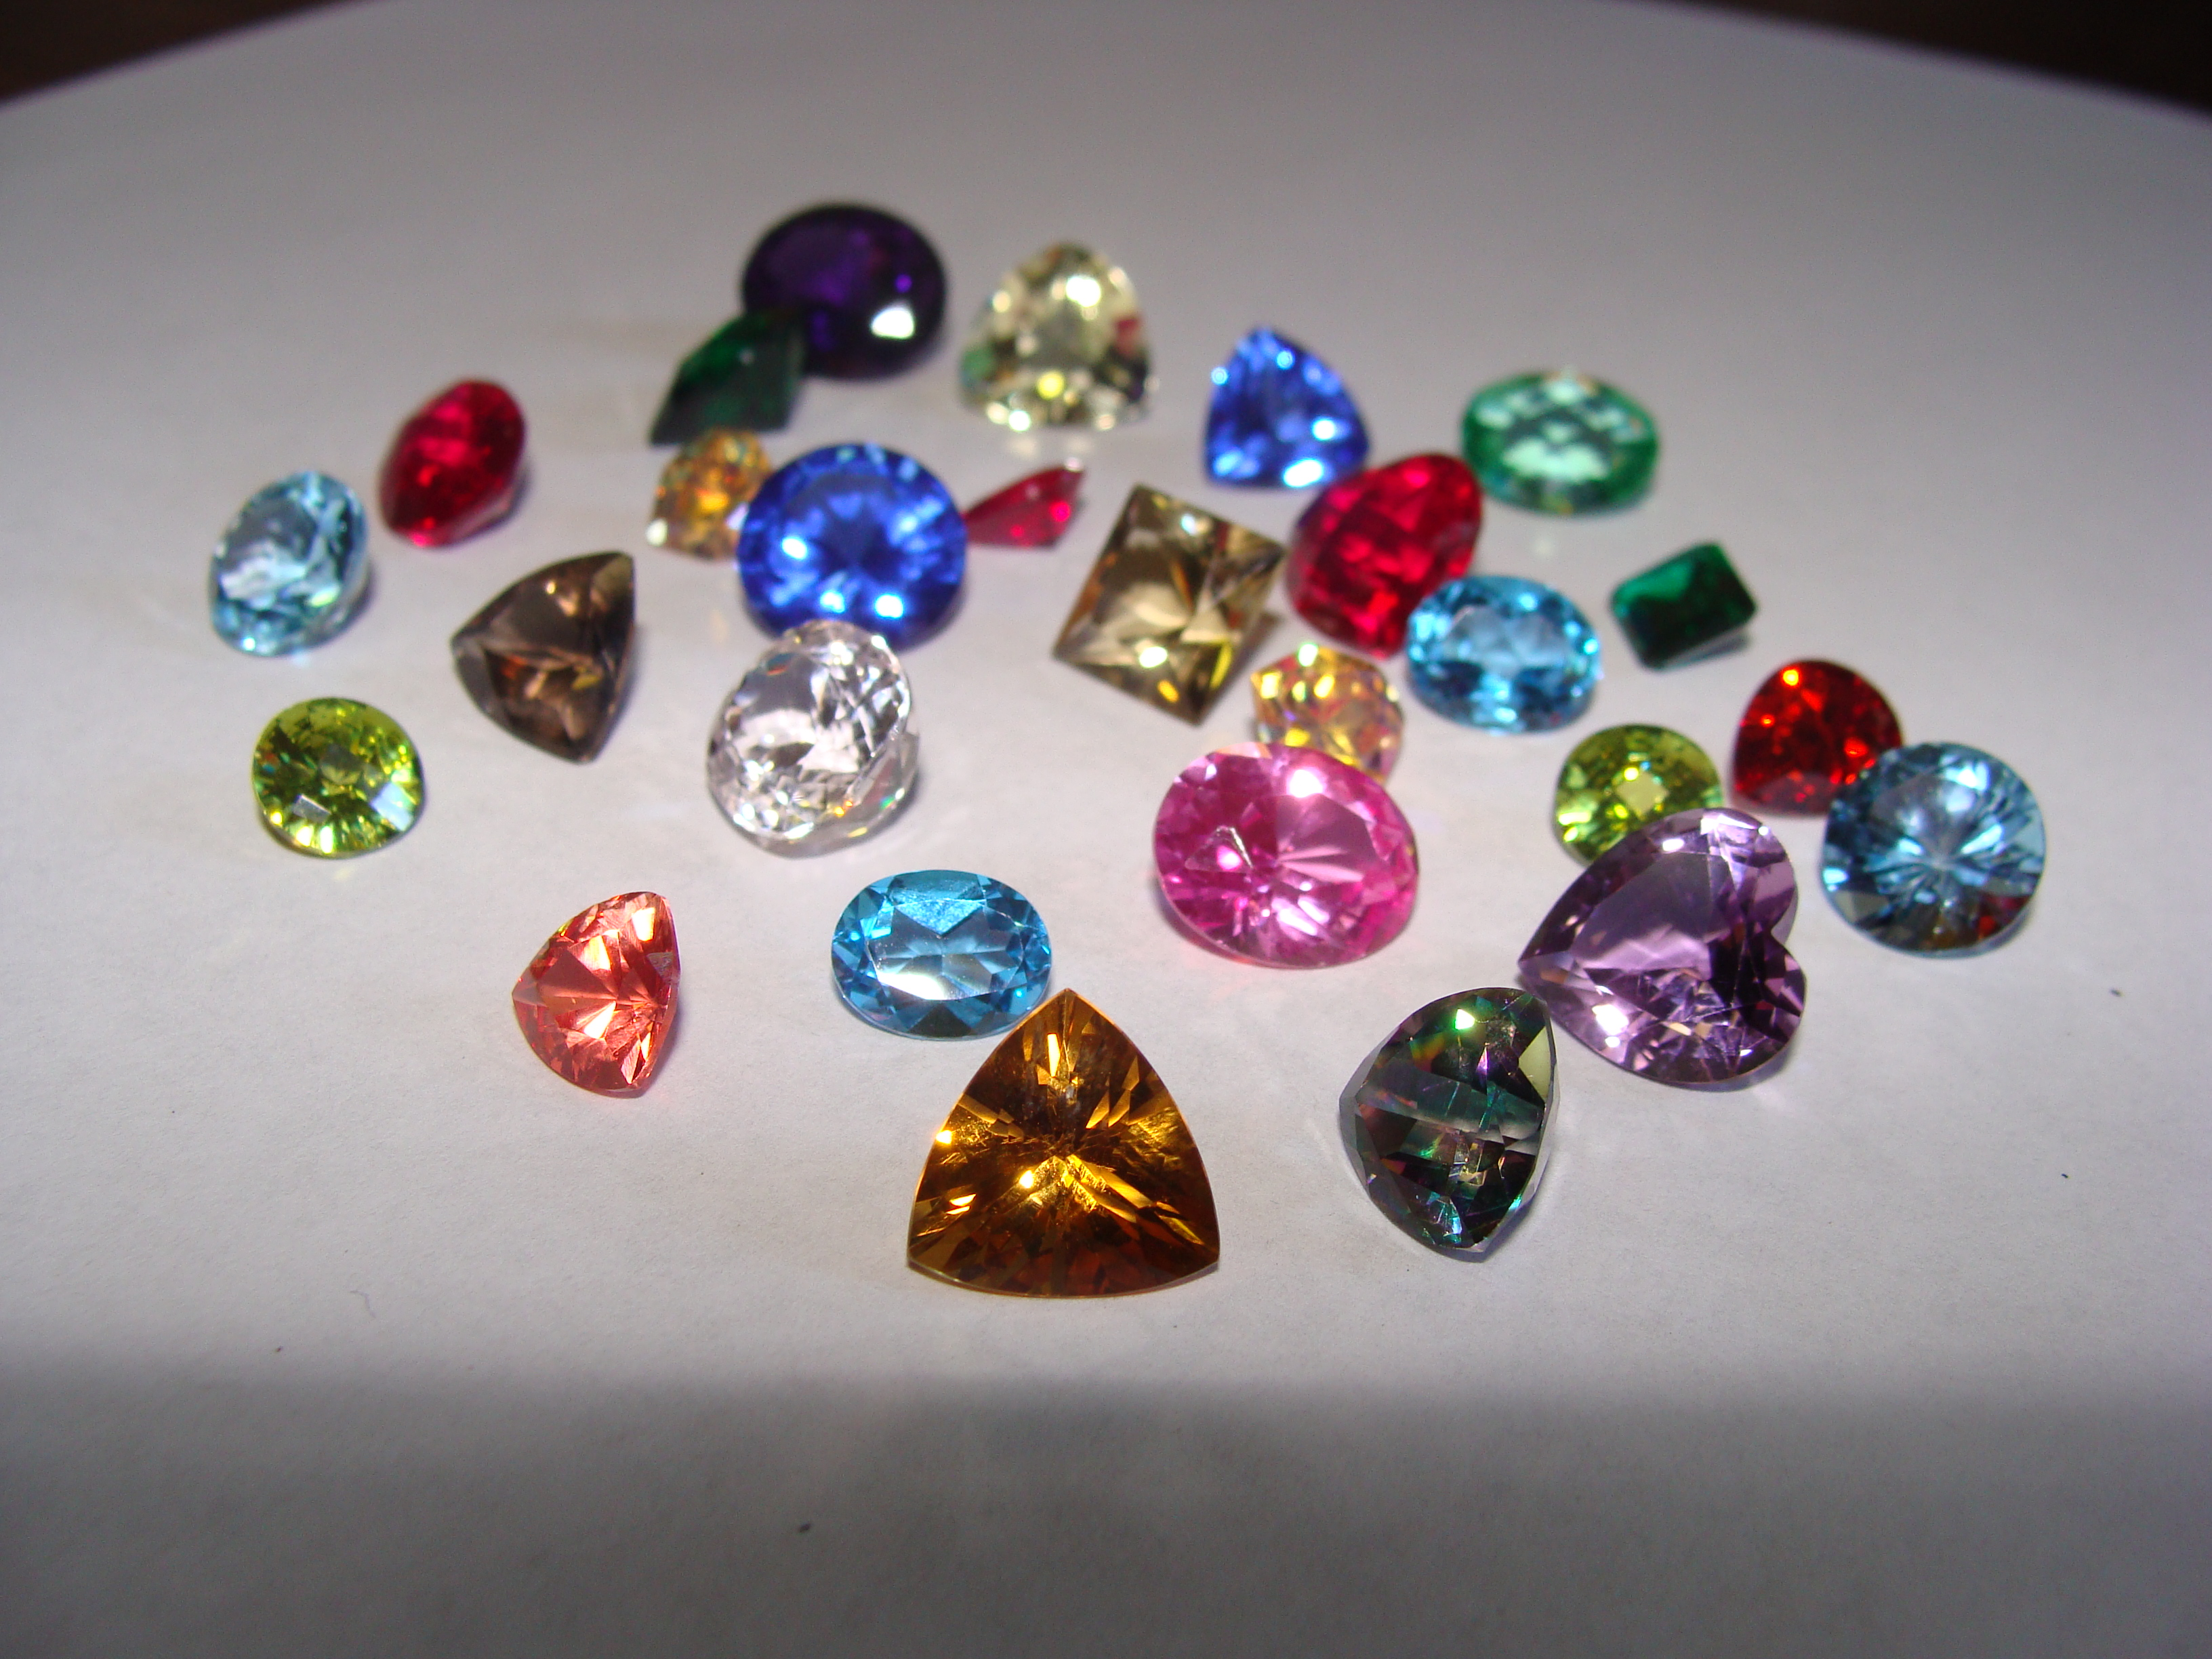 50 carats of faceted gemstones